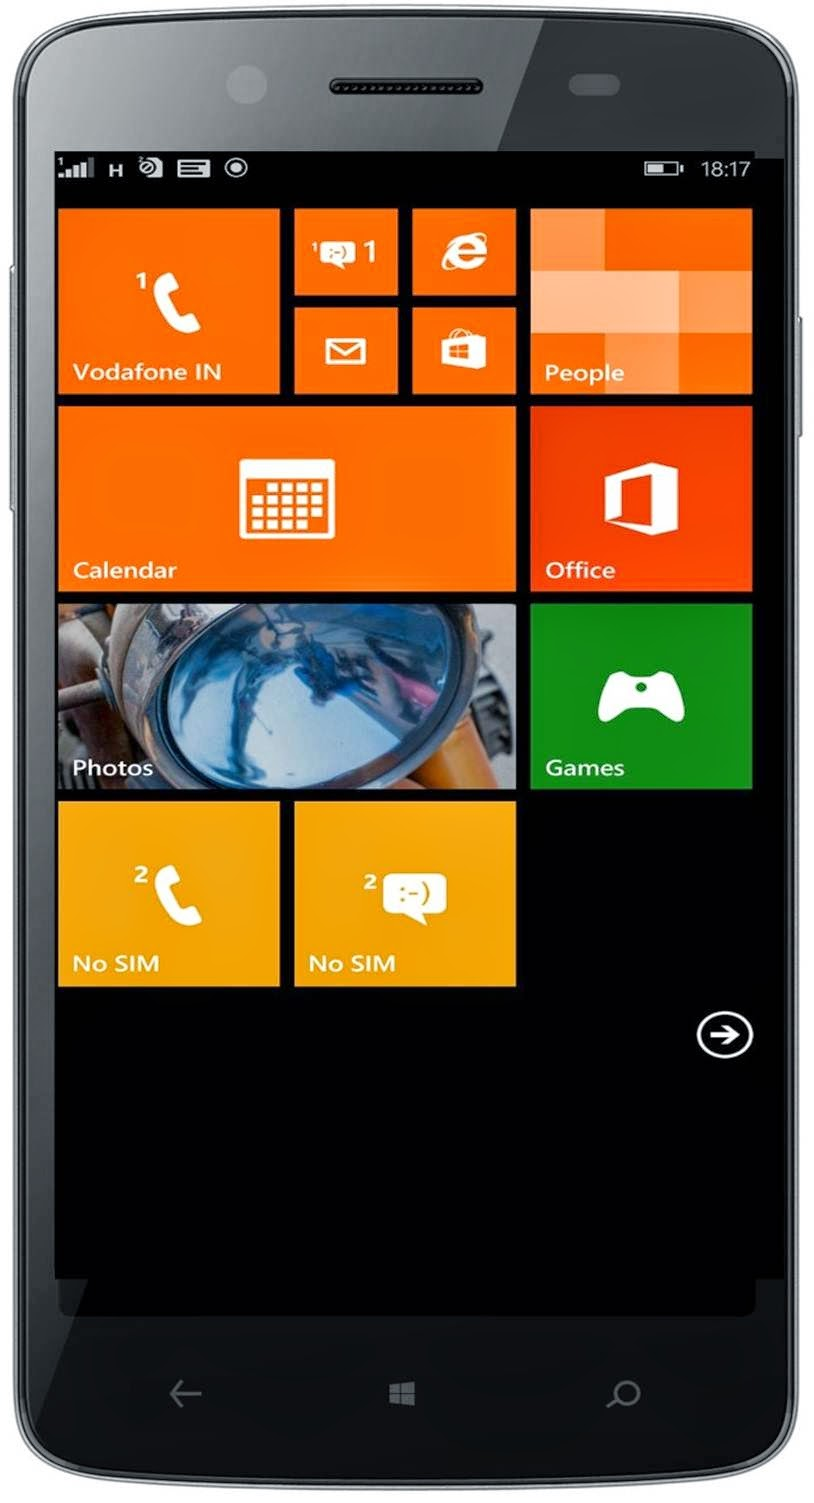 Micromax Canvas Win W121 price and Speicification- Best Budget Windows phone.